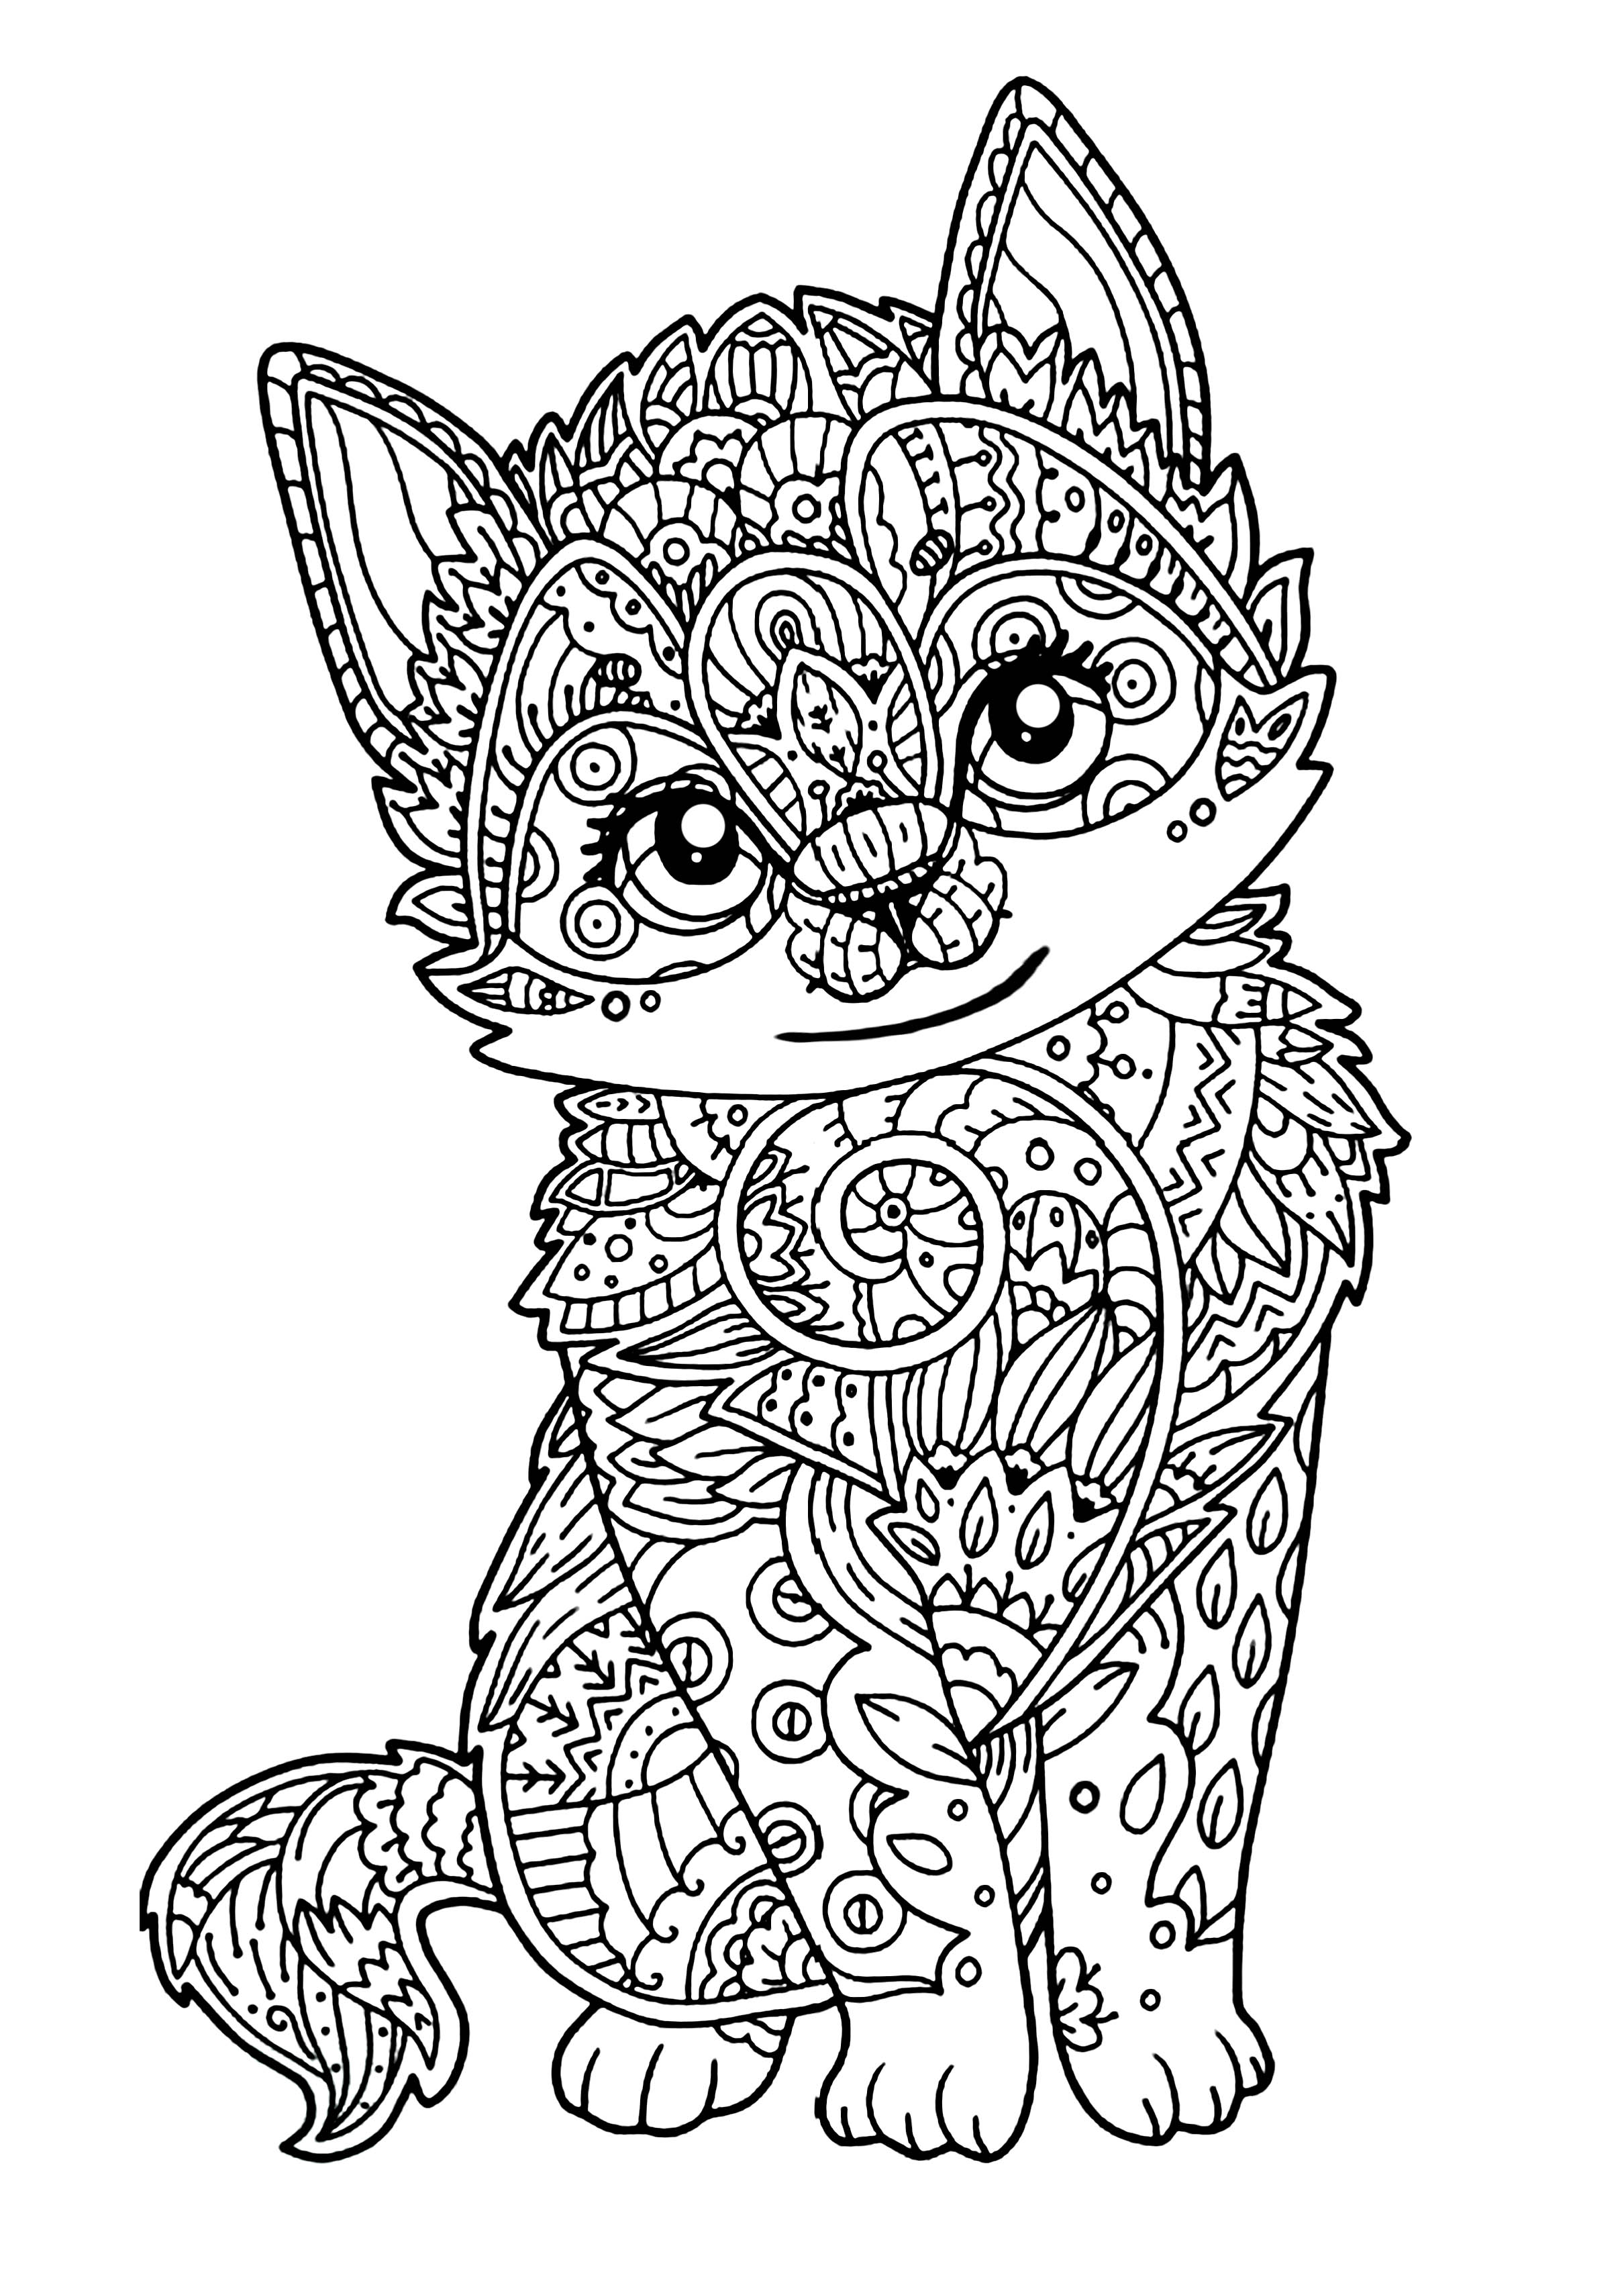 Cute Kitten Cats Adult Coloring Pages